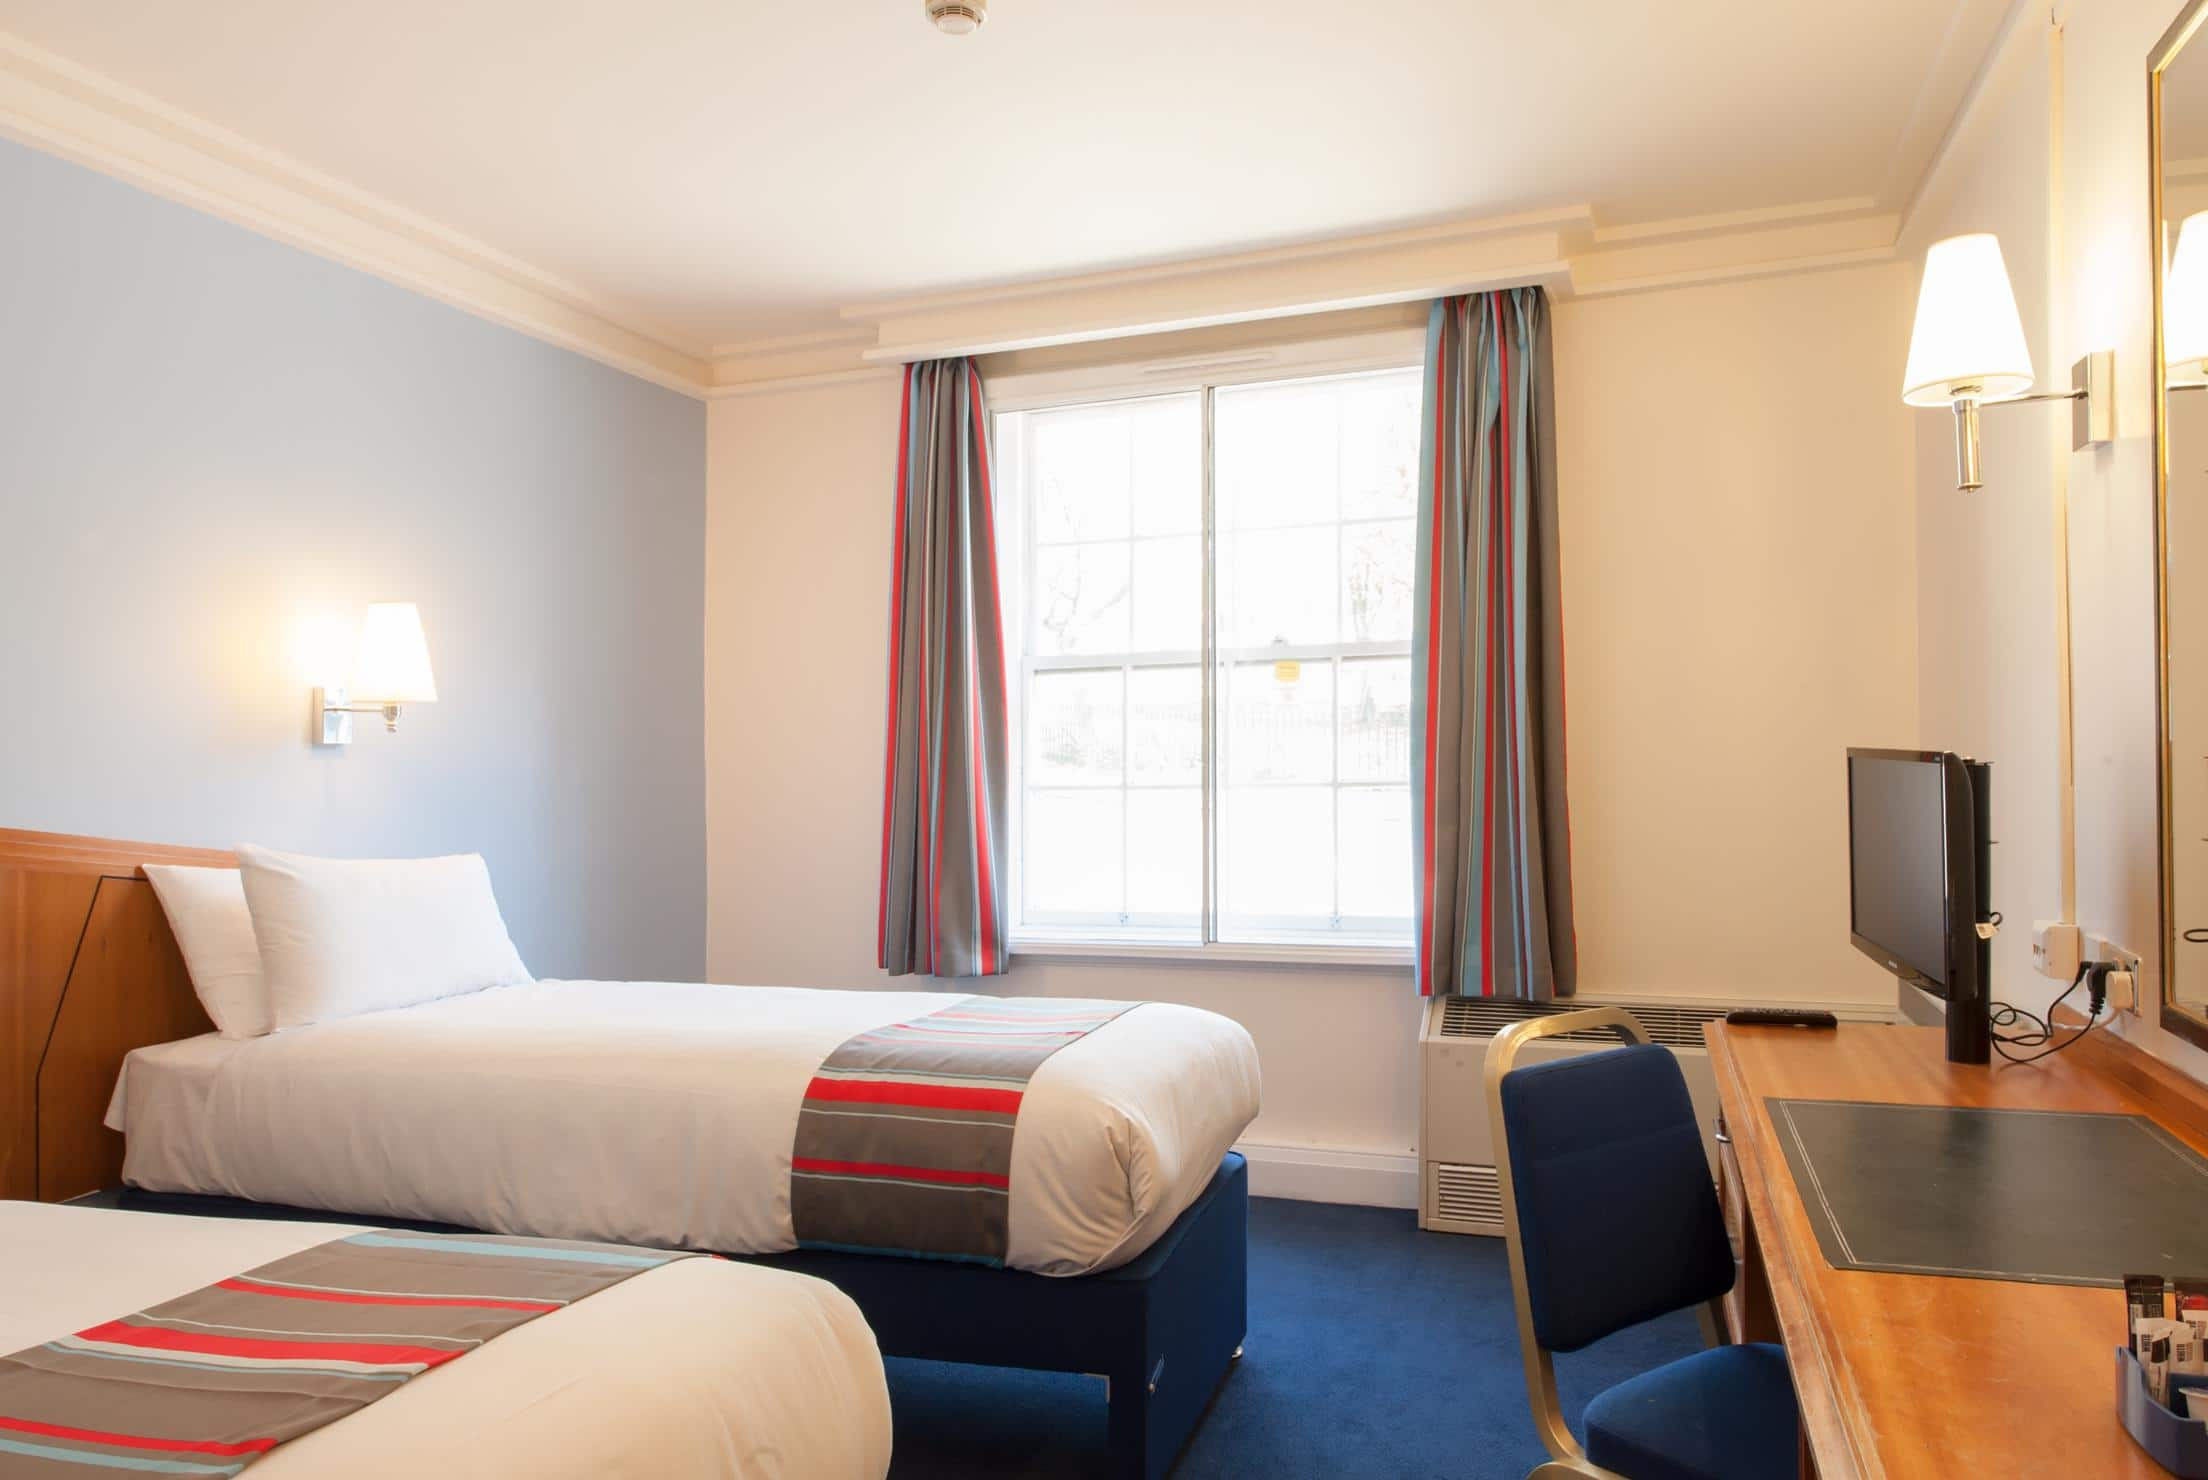 Hotel Bedroom Sizes Uk Travelodge London Kings Cross Royal Scot Hotel London